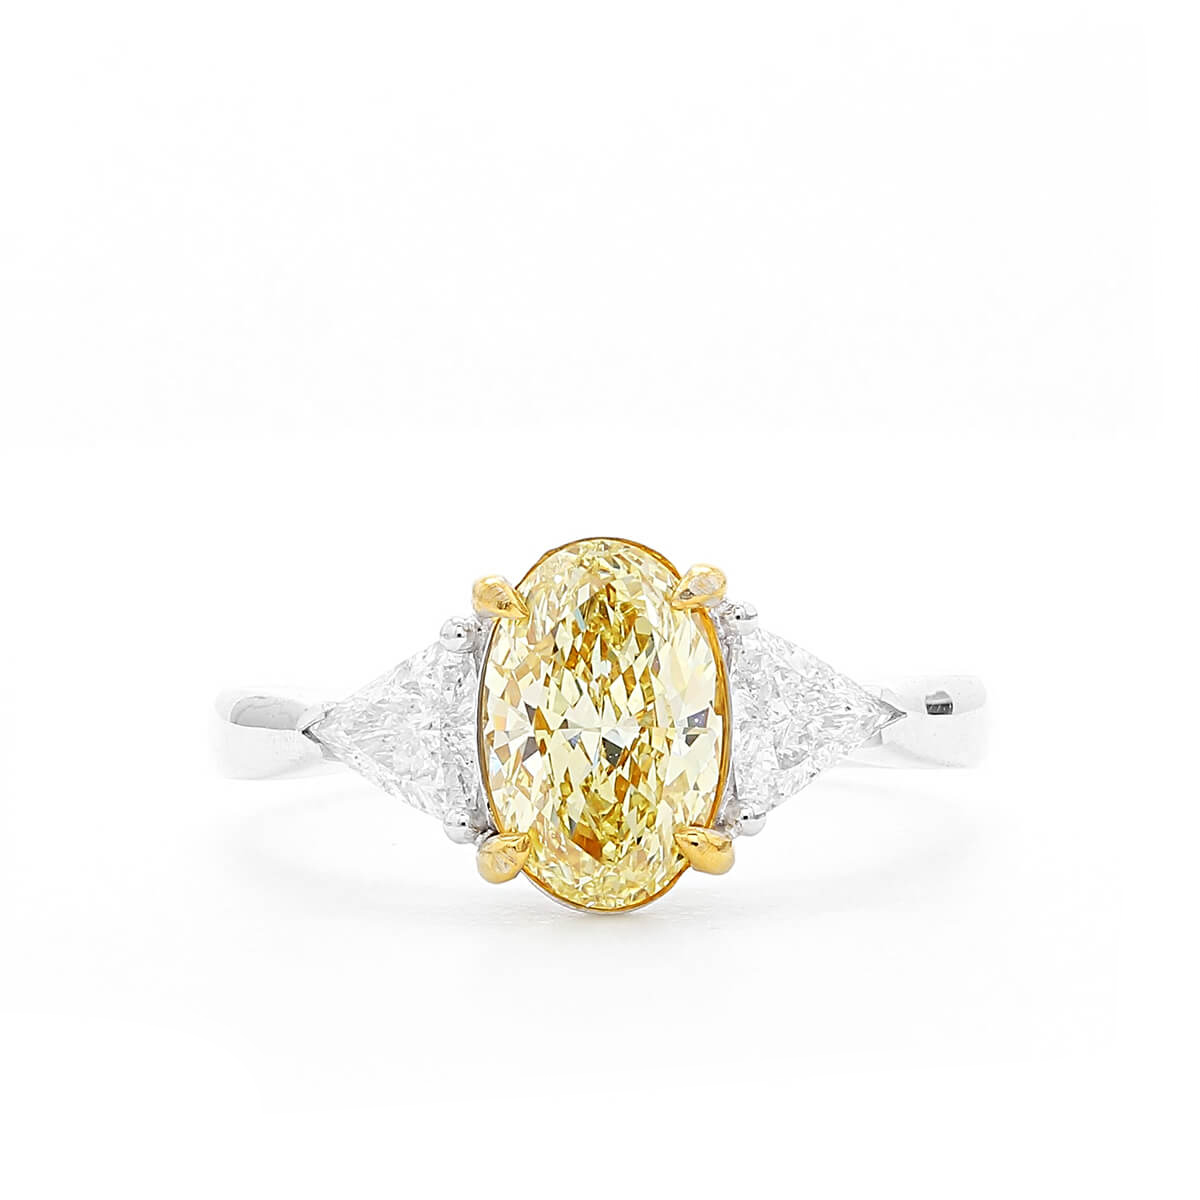 3bcf131bf25ae0 Details about 1.70 Ct Gorgeous Fancy Yellow Diamond Ring Oval Cut Natural  18K White Gold GIA